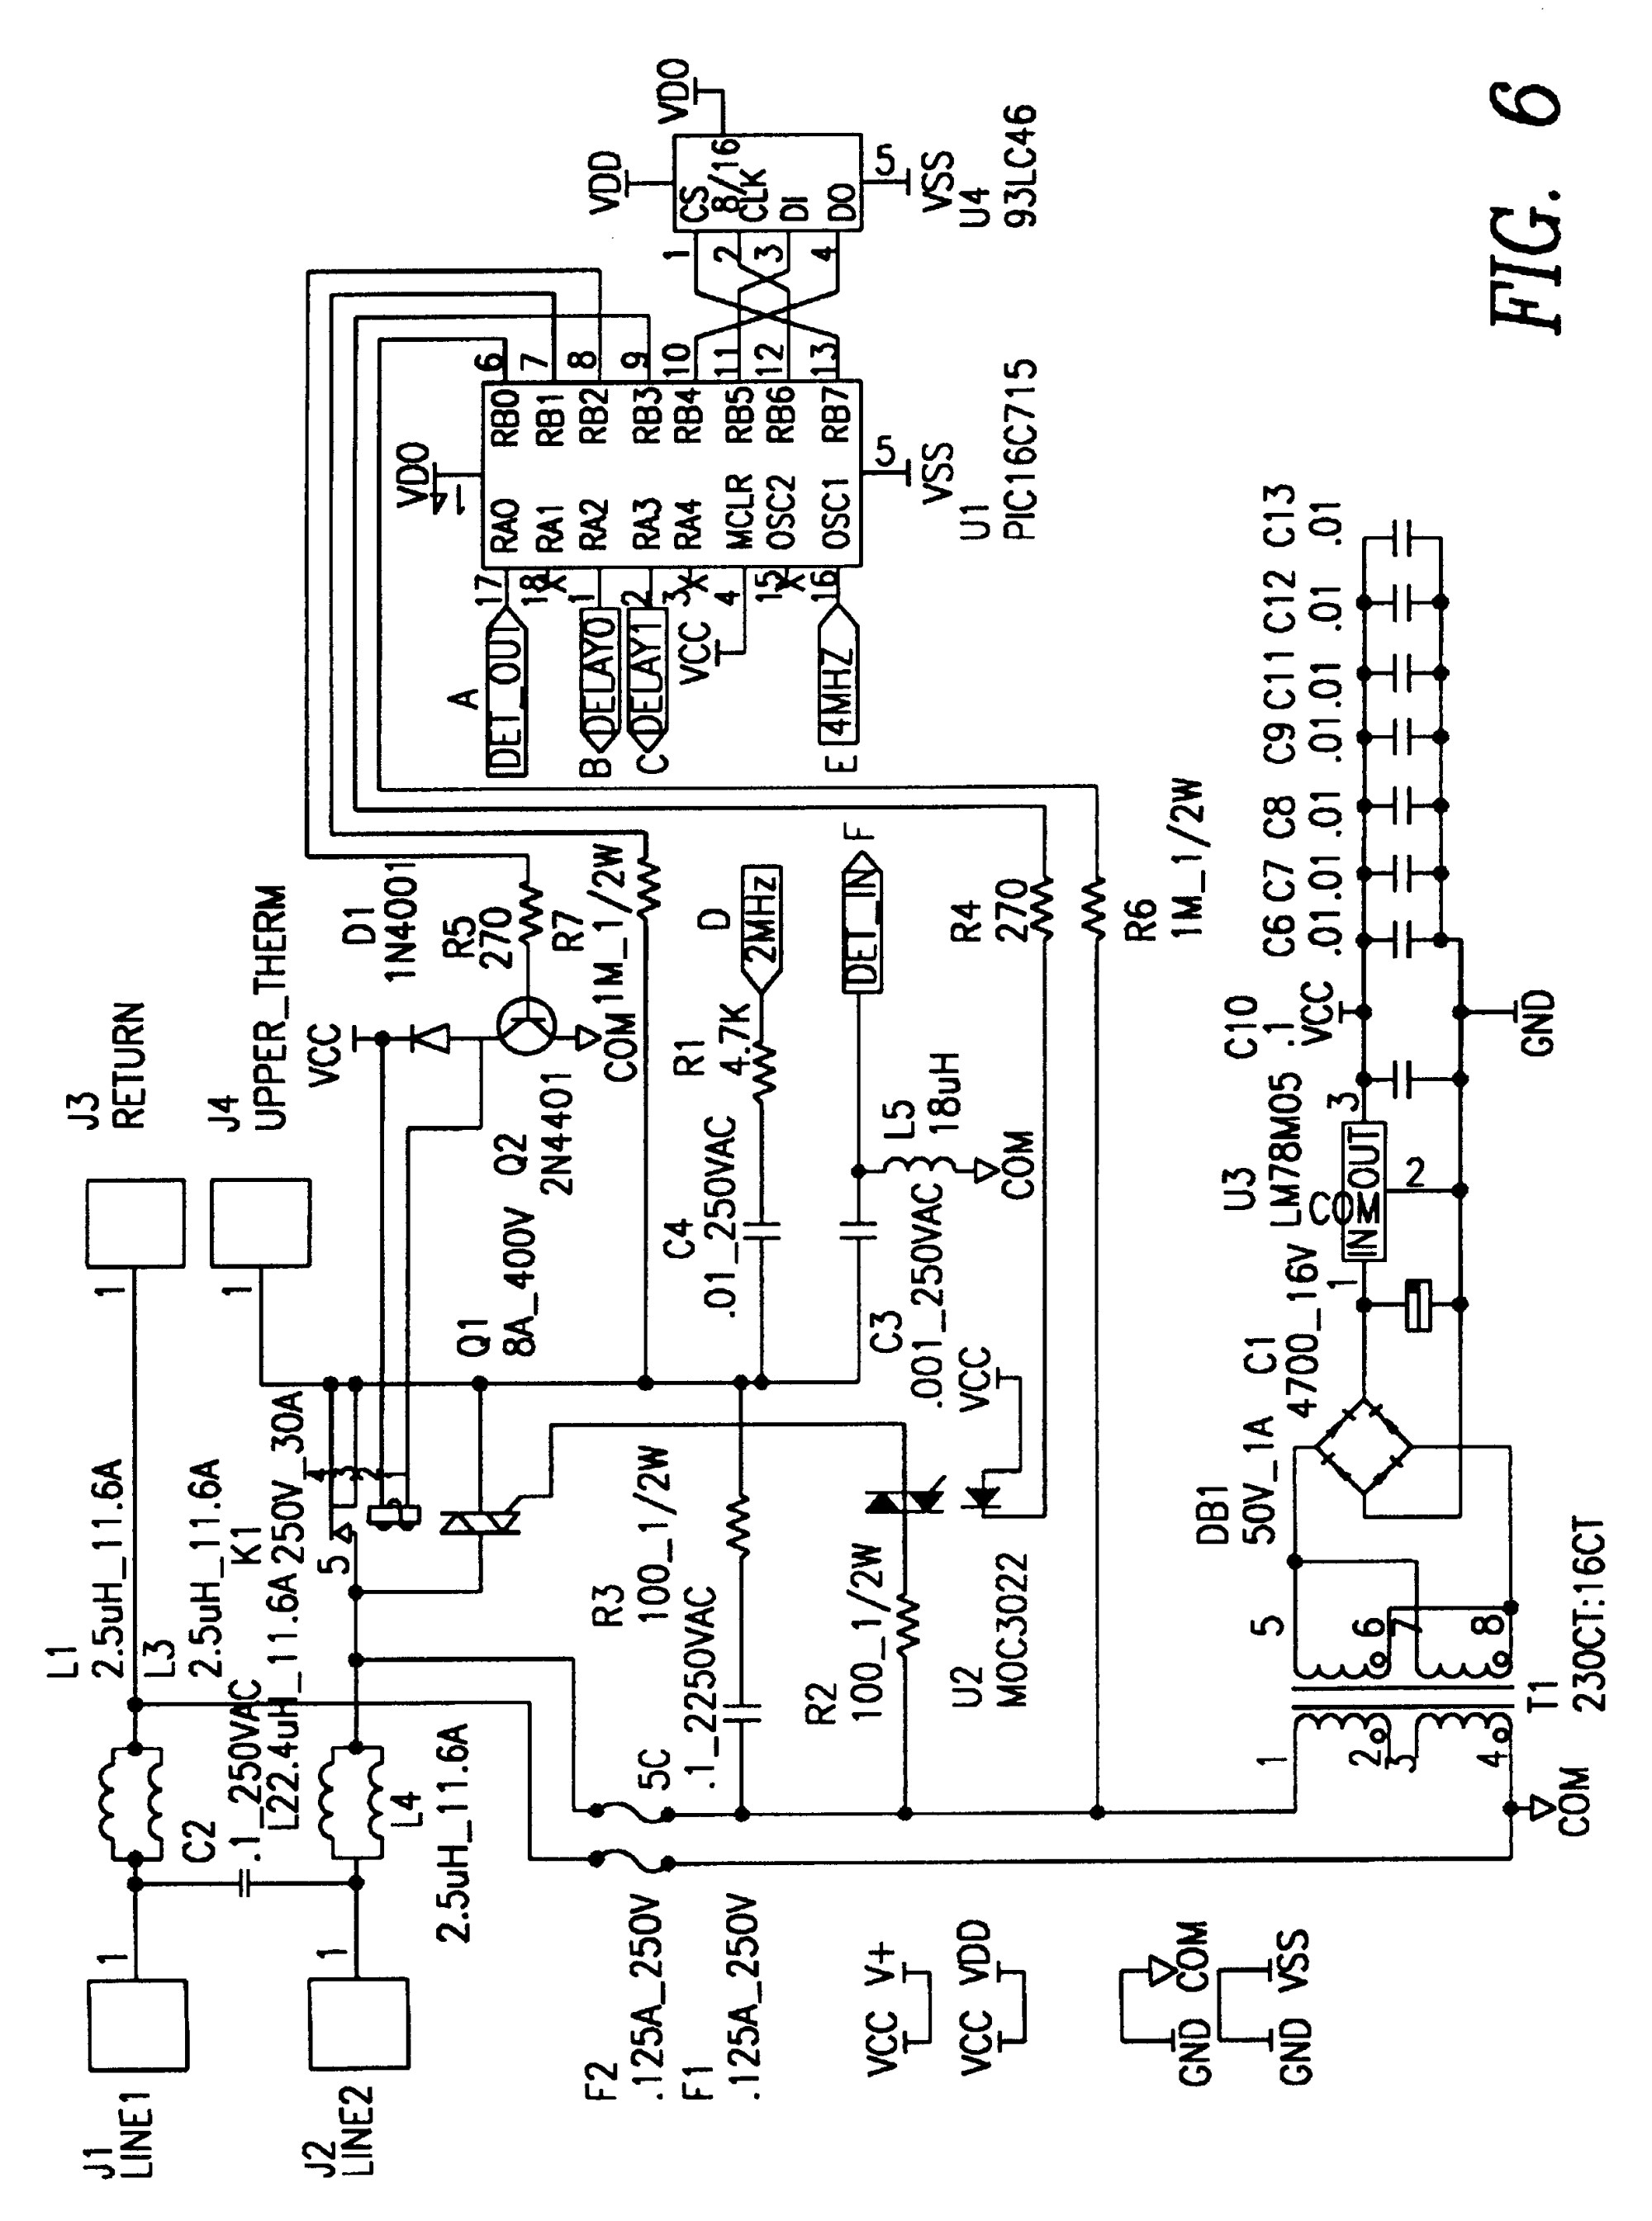 hight resolution of  whelen siren wrg 6786 9b pin mini din wiring diagram on whelen 9000 series wiring diagram wiring diagram for whelen 295hfsa1